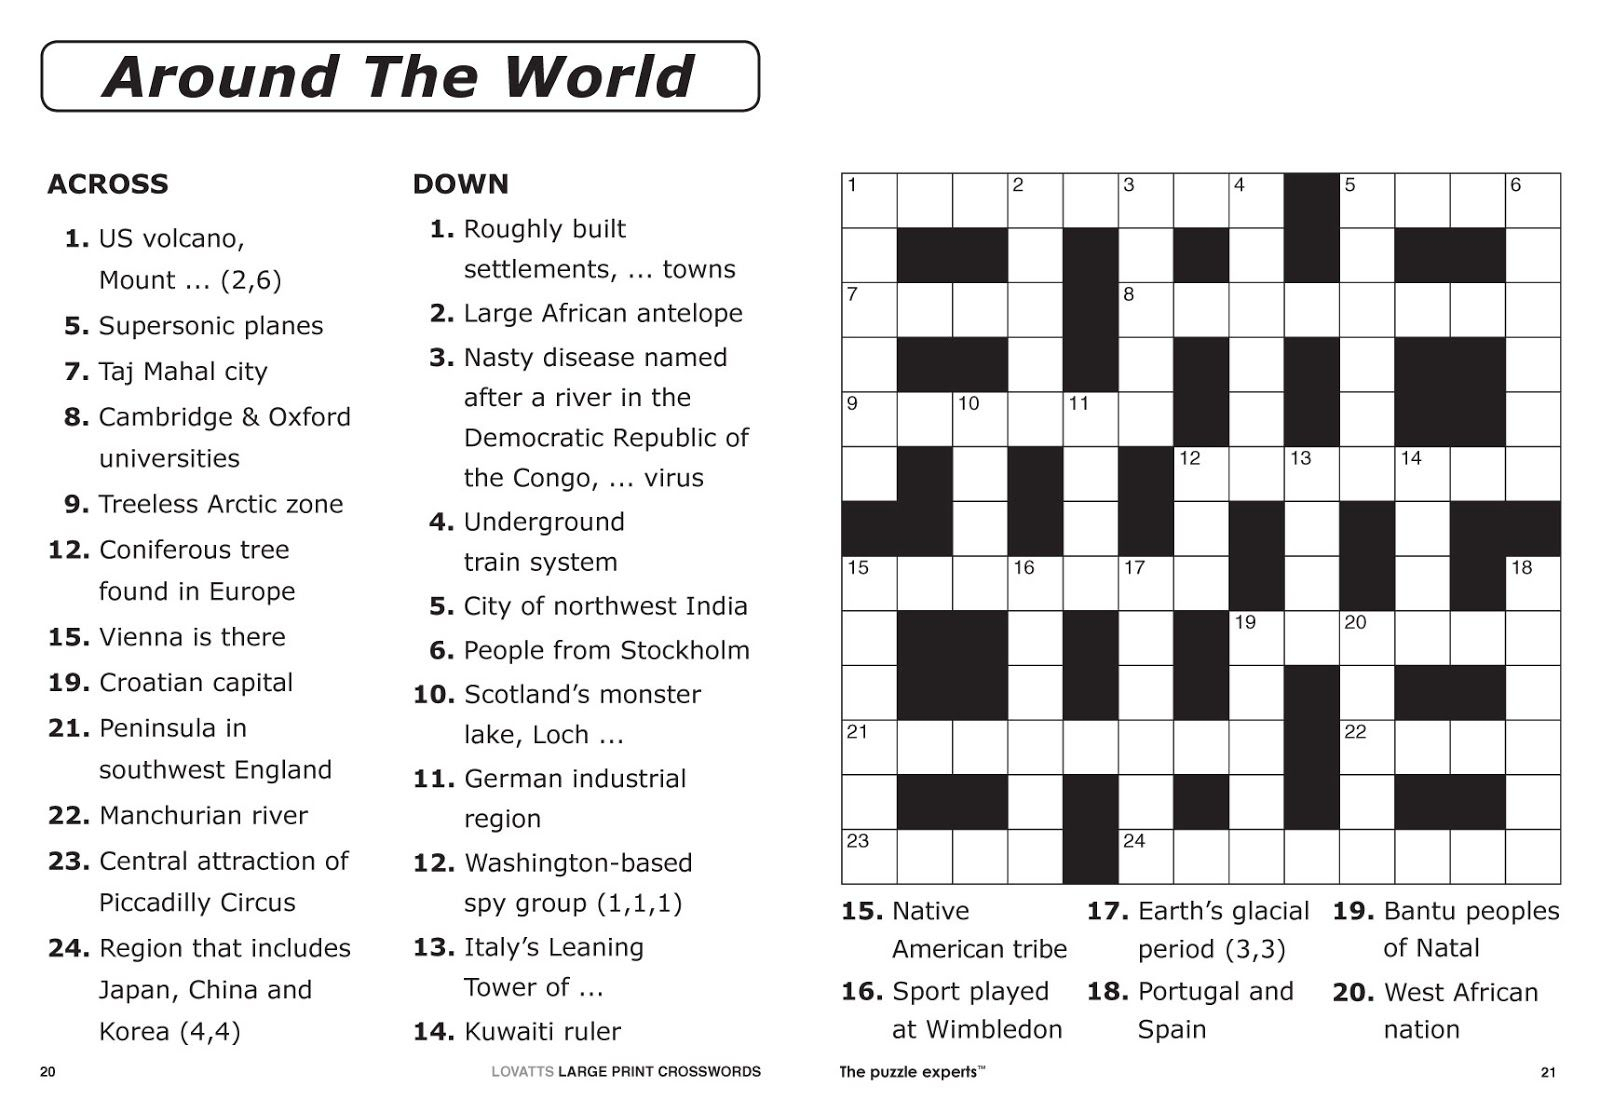 Free Printable Large Print Crossword Puzzles | M3U8 - Printable Puzzles For 9 Year Olds